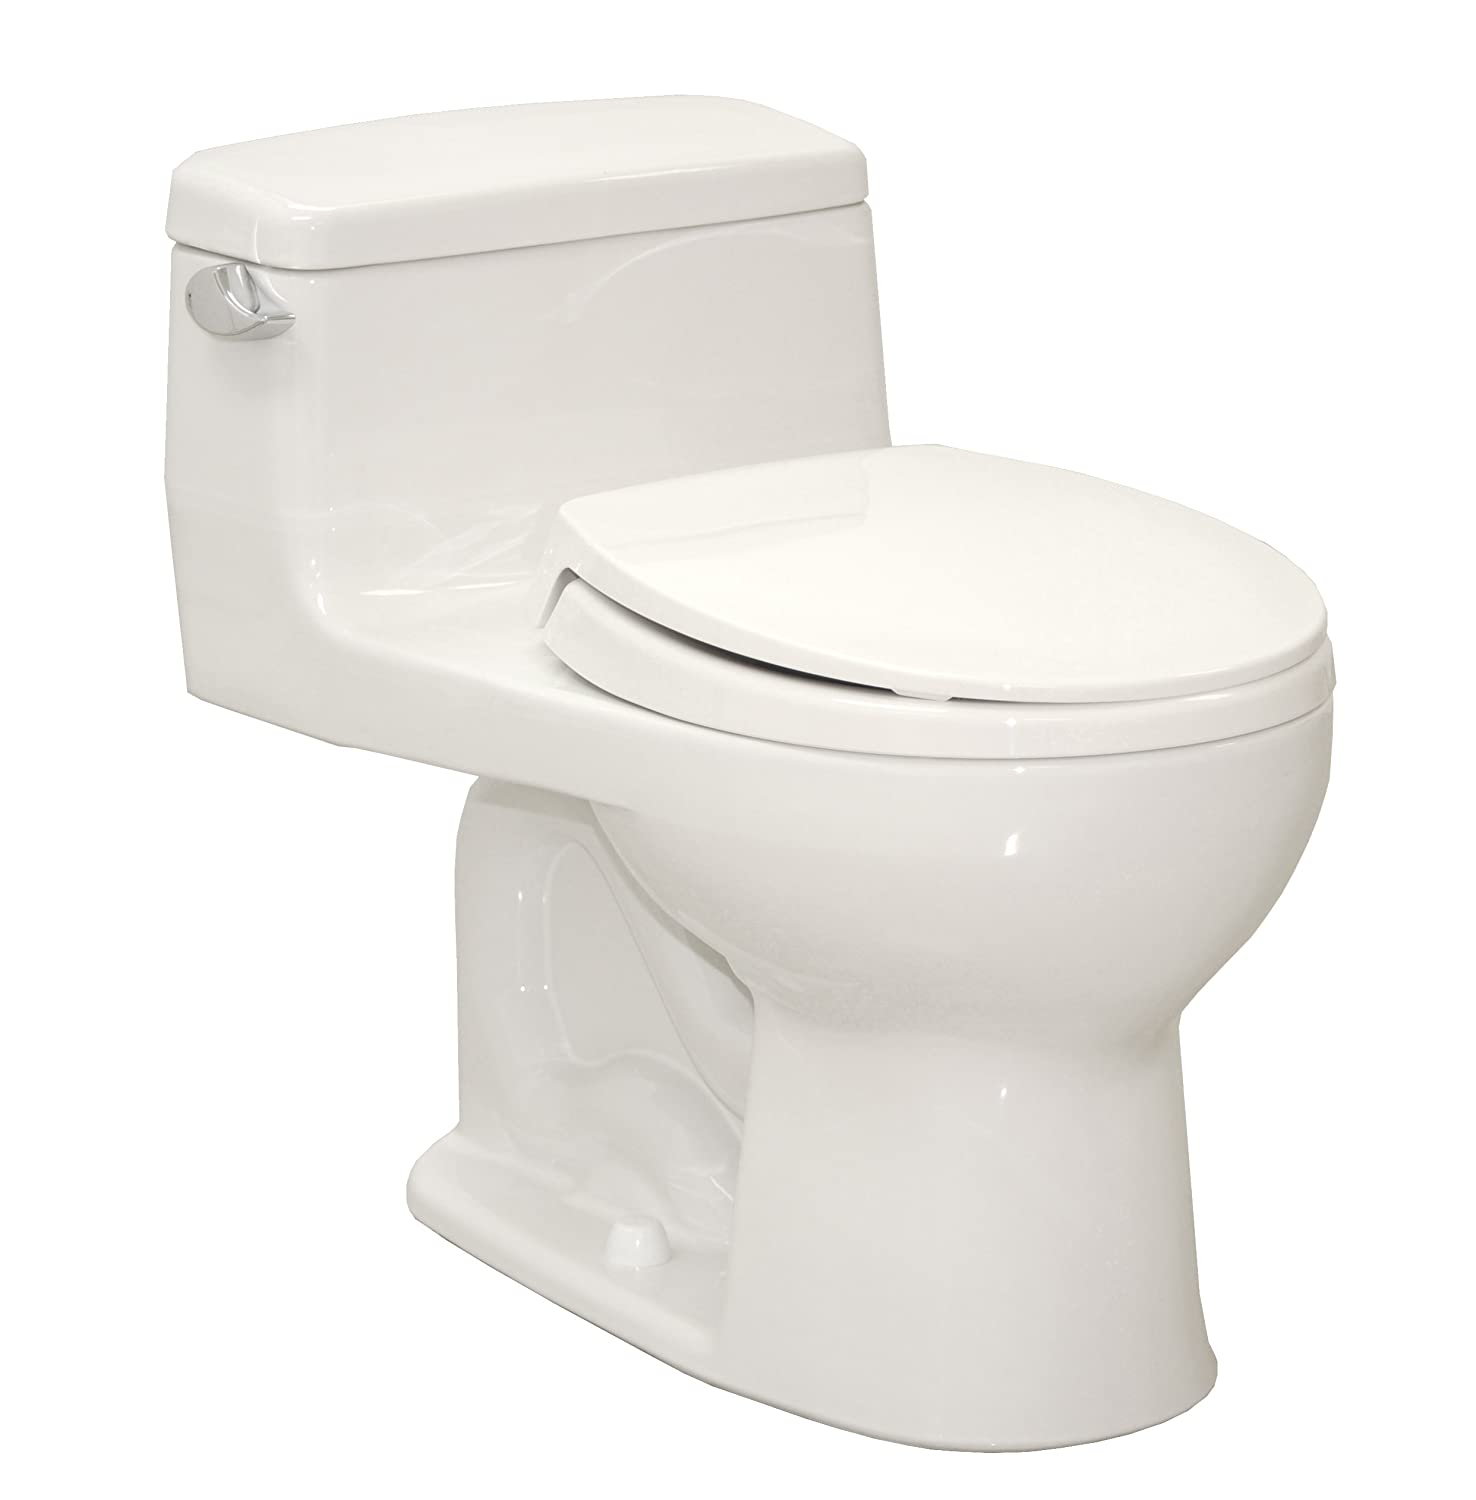 TOTO MS863113#03 Supreme Round One Piece Toilet, Bone - - Amazon.com